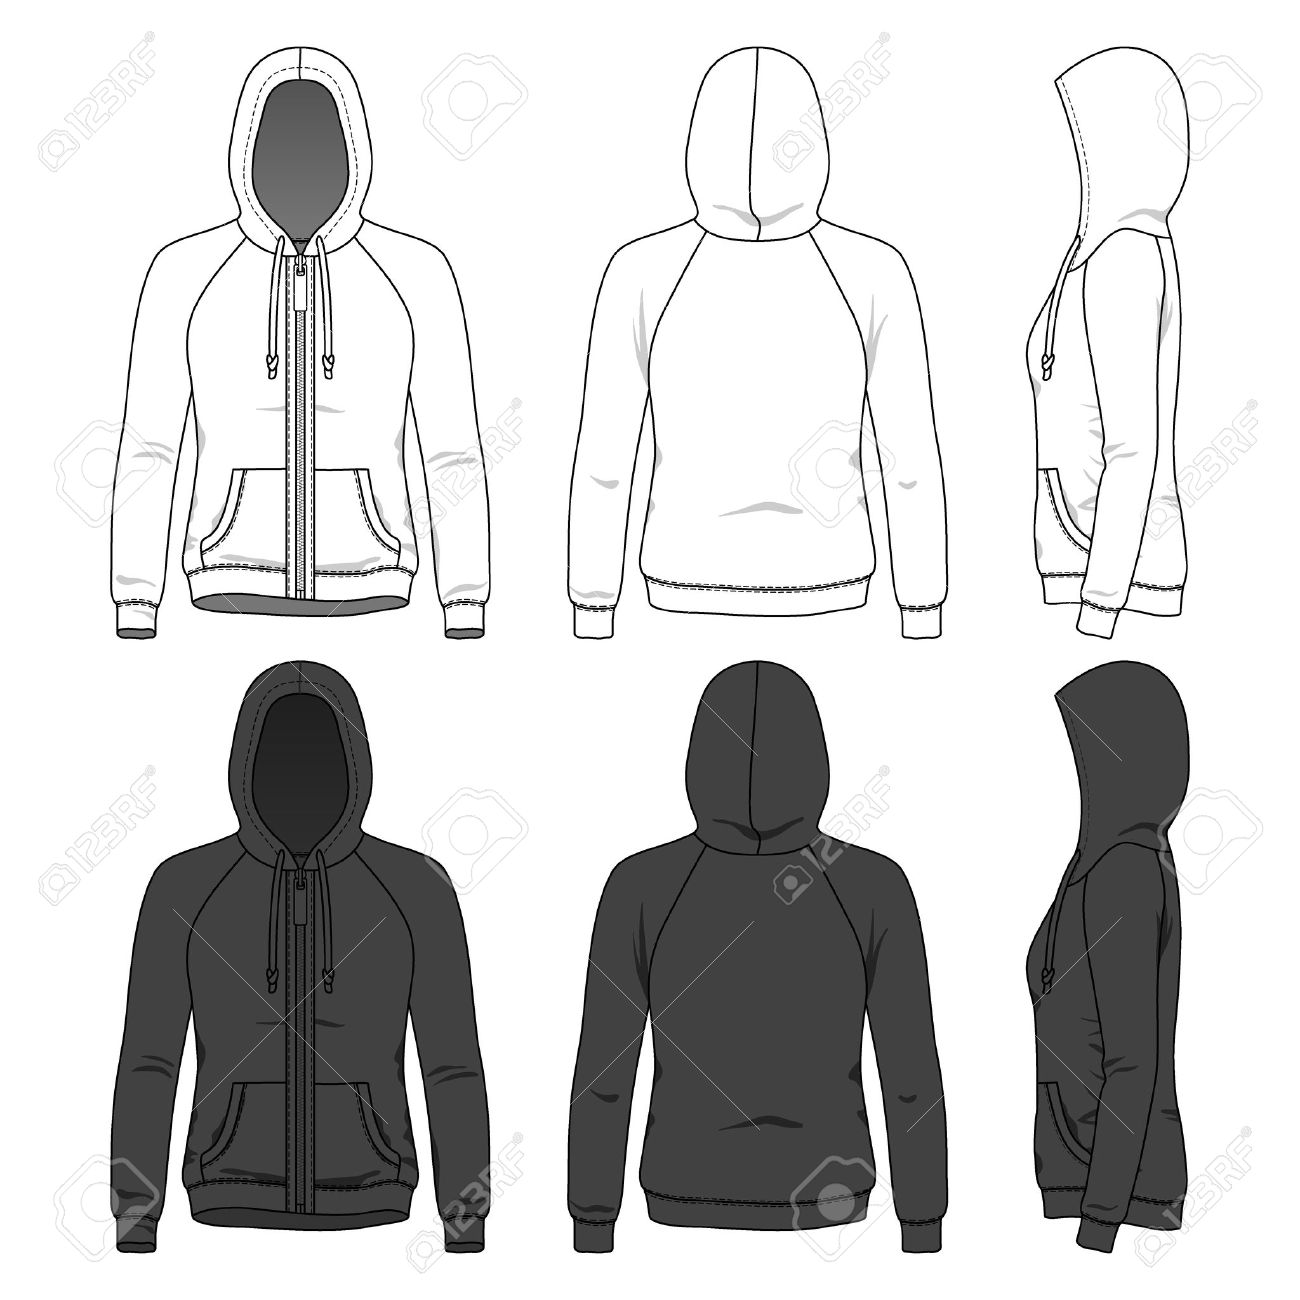 Template hoodie template and shirt design template photoshop - Hooded Sweatshirt Template Dalarcon